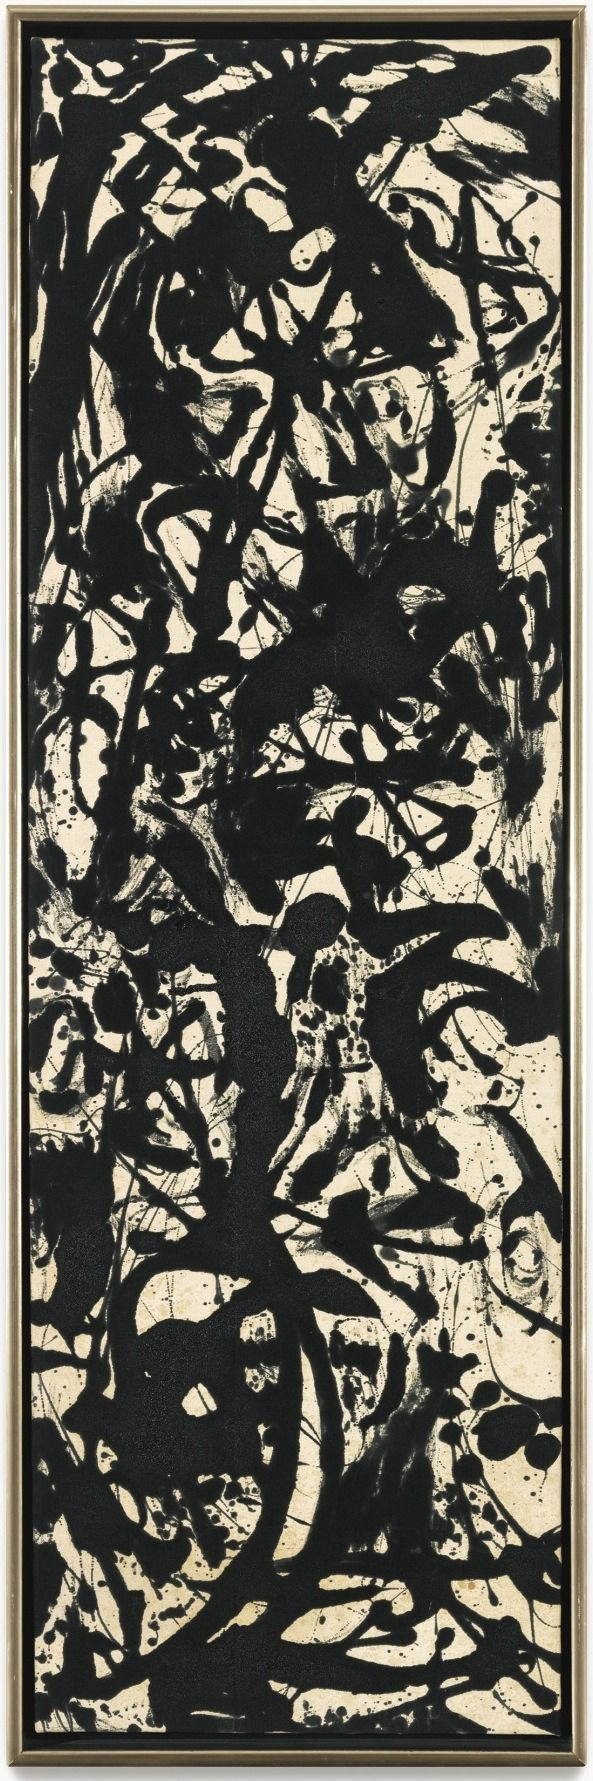 17 best images about jackson pollock jackson loverofbeauty ldquo jackson pollock black and white painting 1952 rdquo